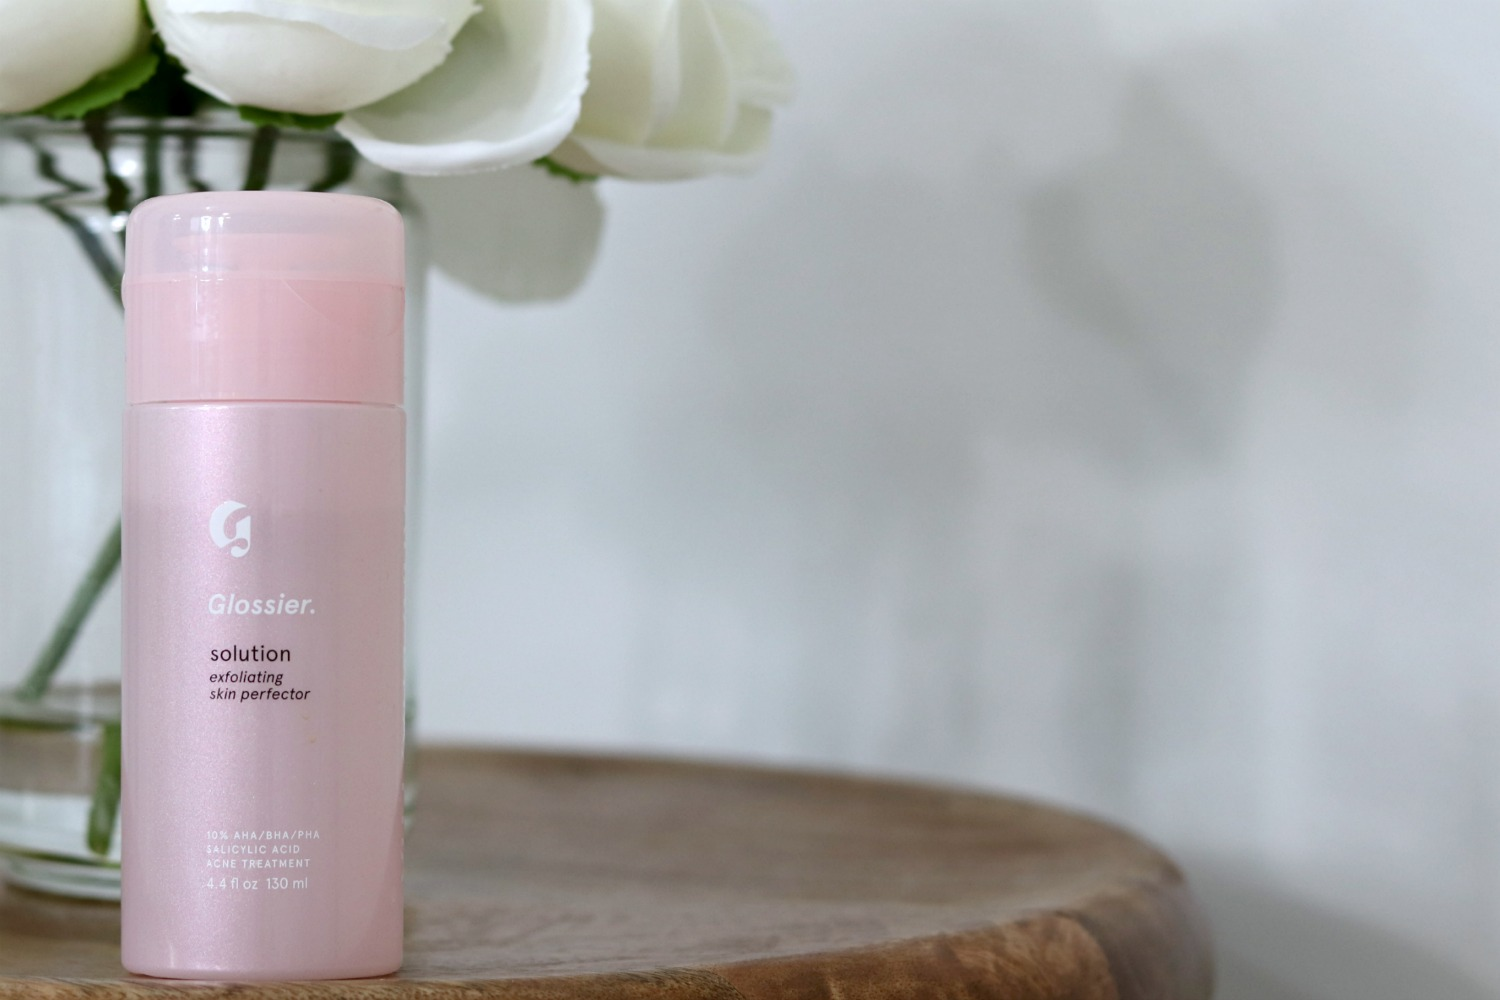 Glossier Solution Exfoliating Skin Perfector Review hero | Brighter Darling Blog